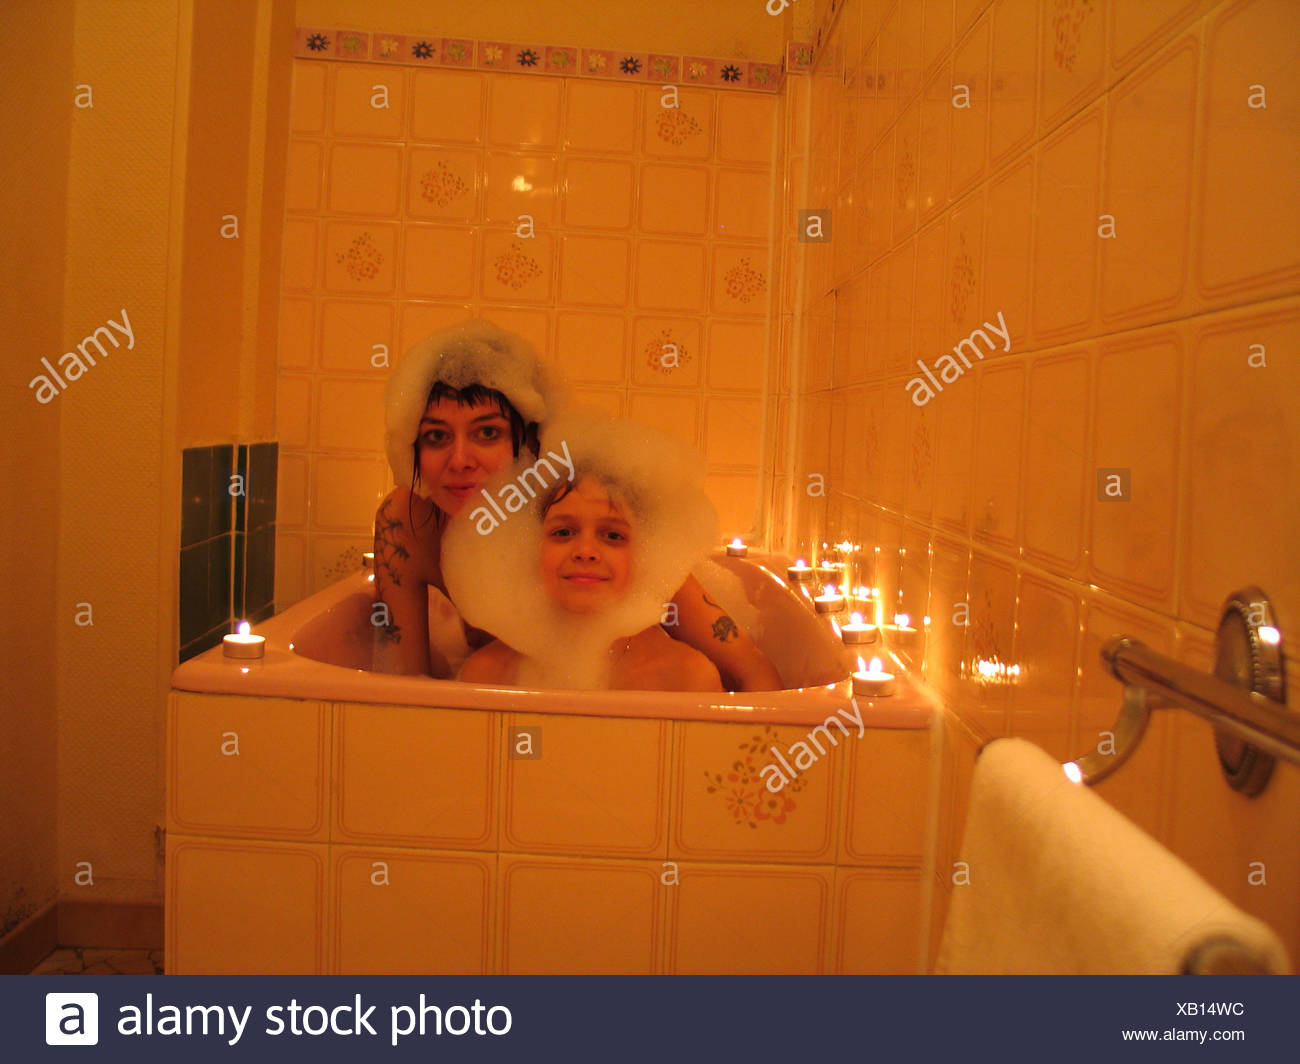 Mom And Son In Bathroom Com